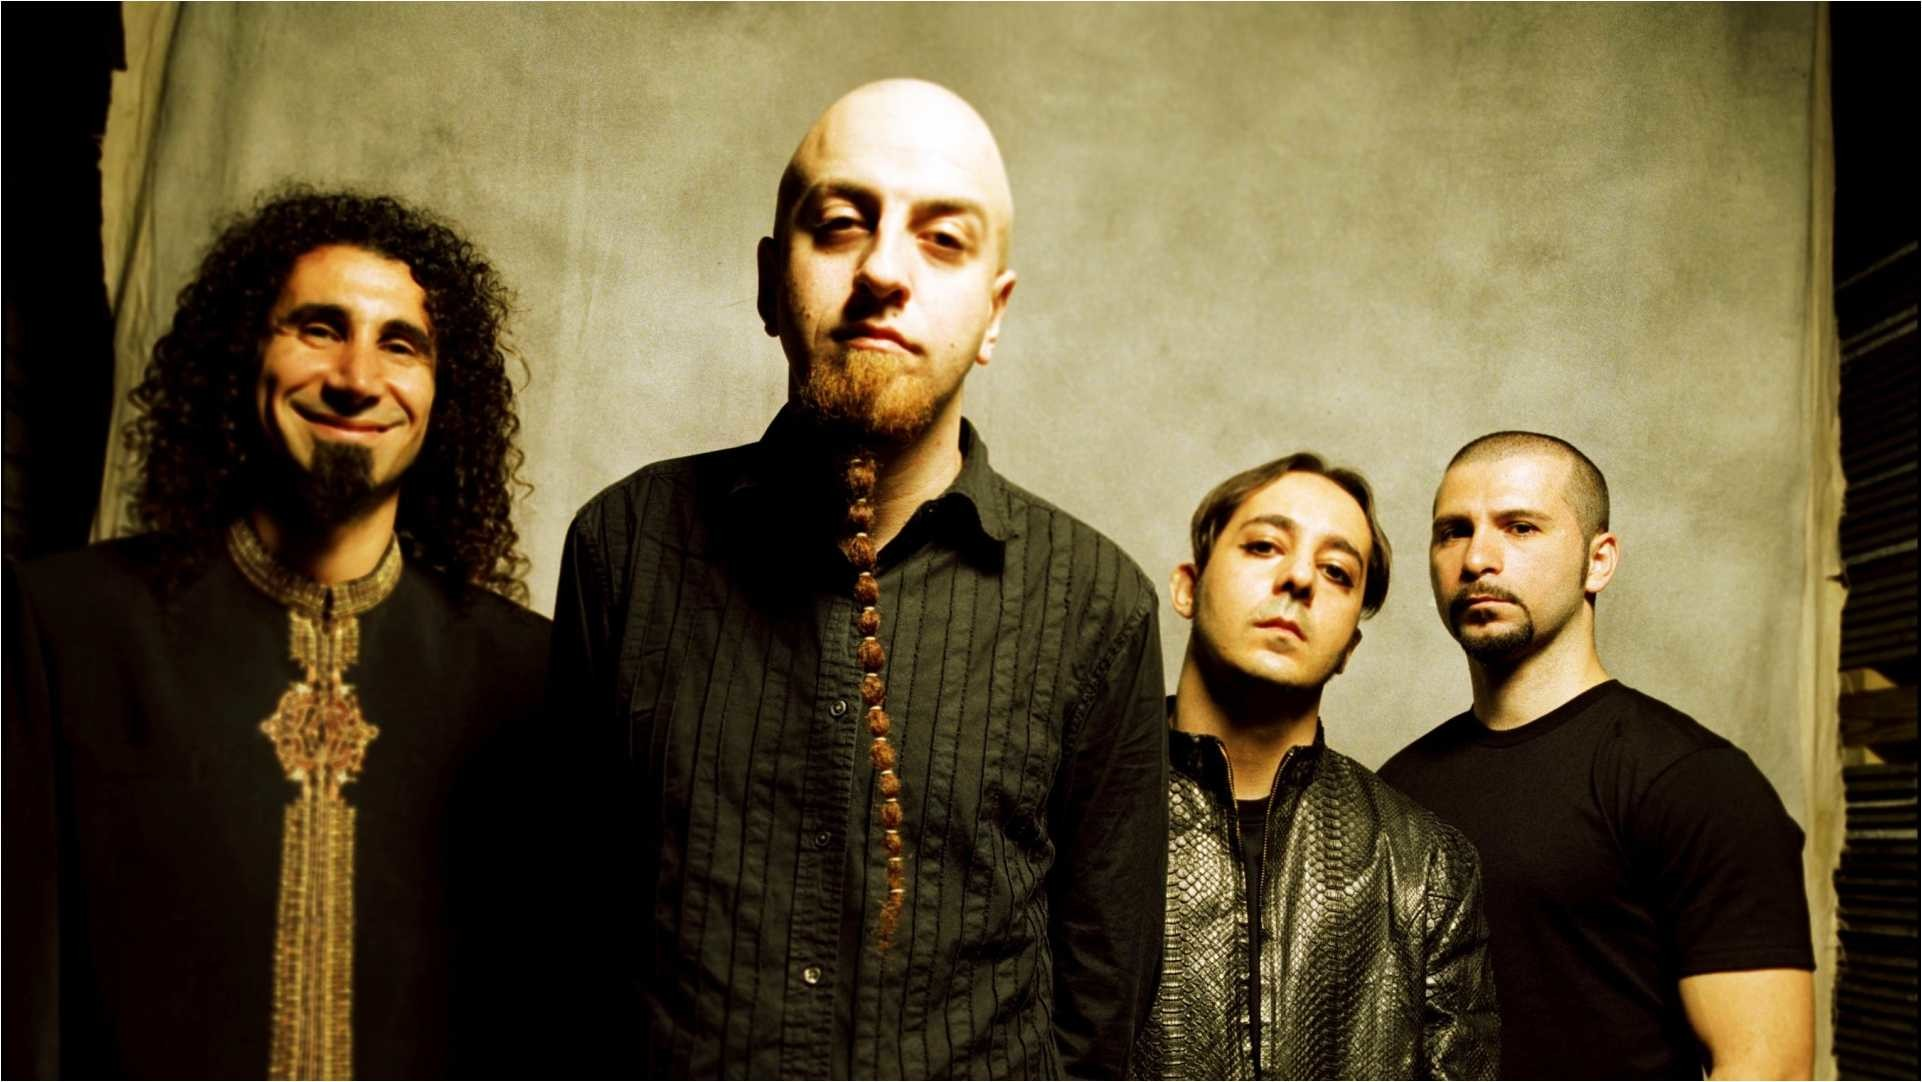 3840x1200 Download Wallpaper System Of A Down Band Members